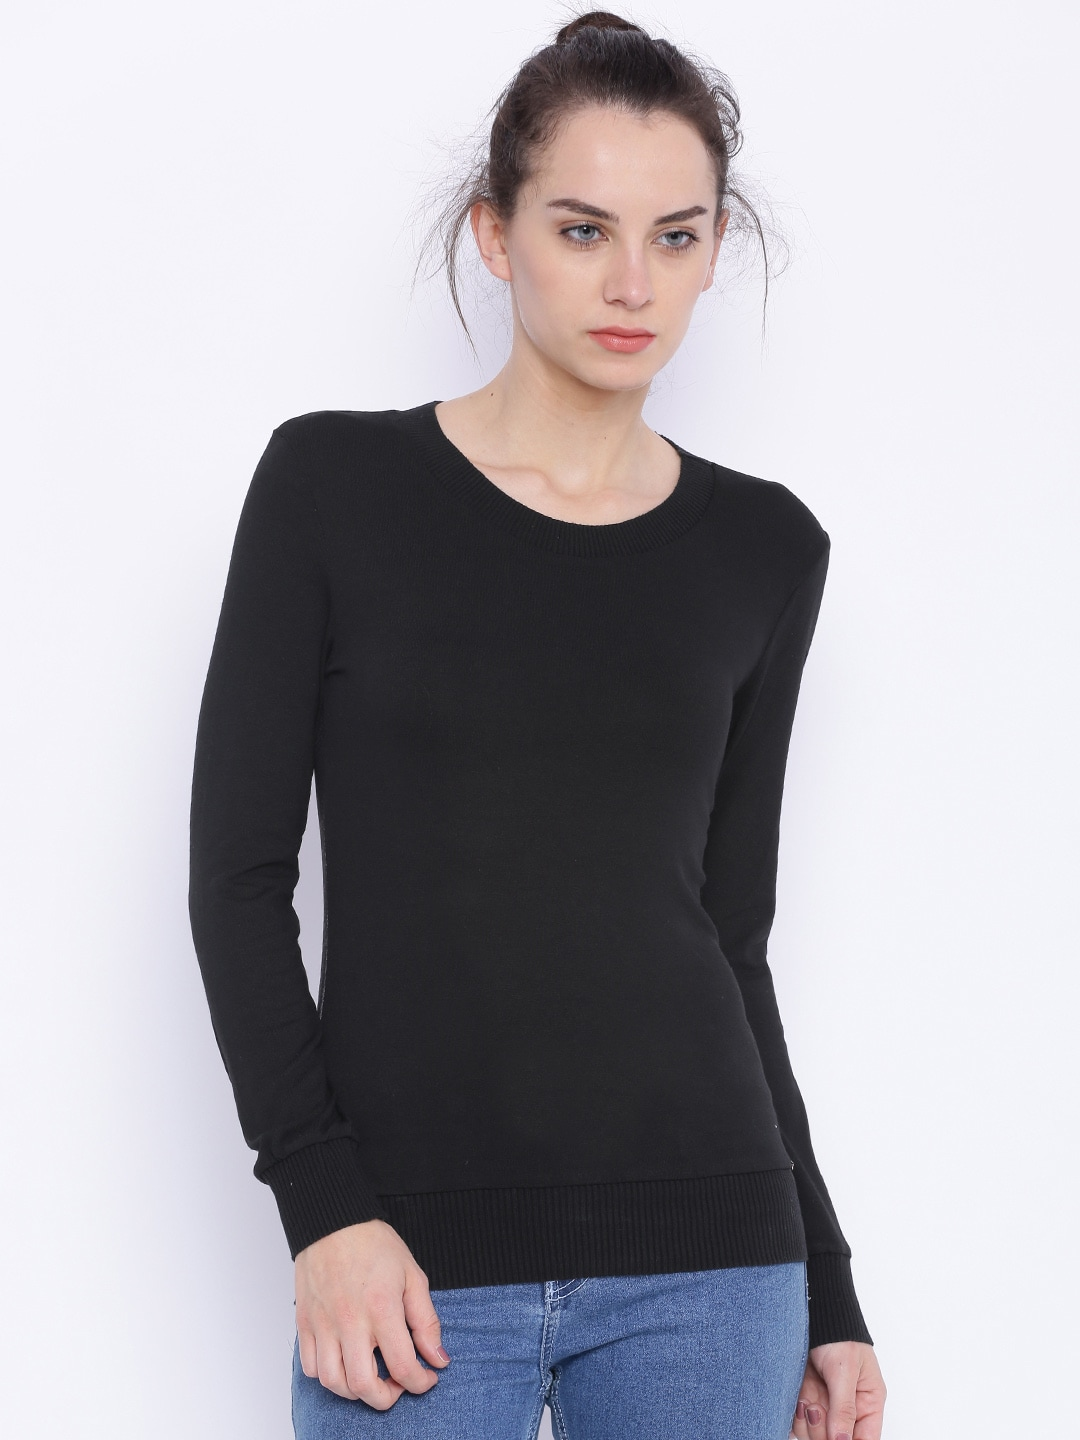 Deal Jeans Women Black Top